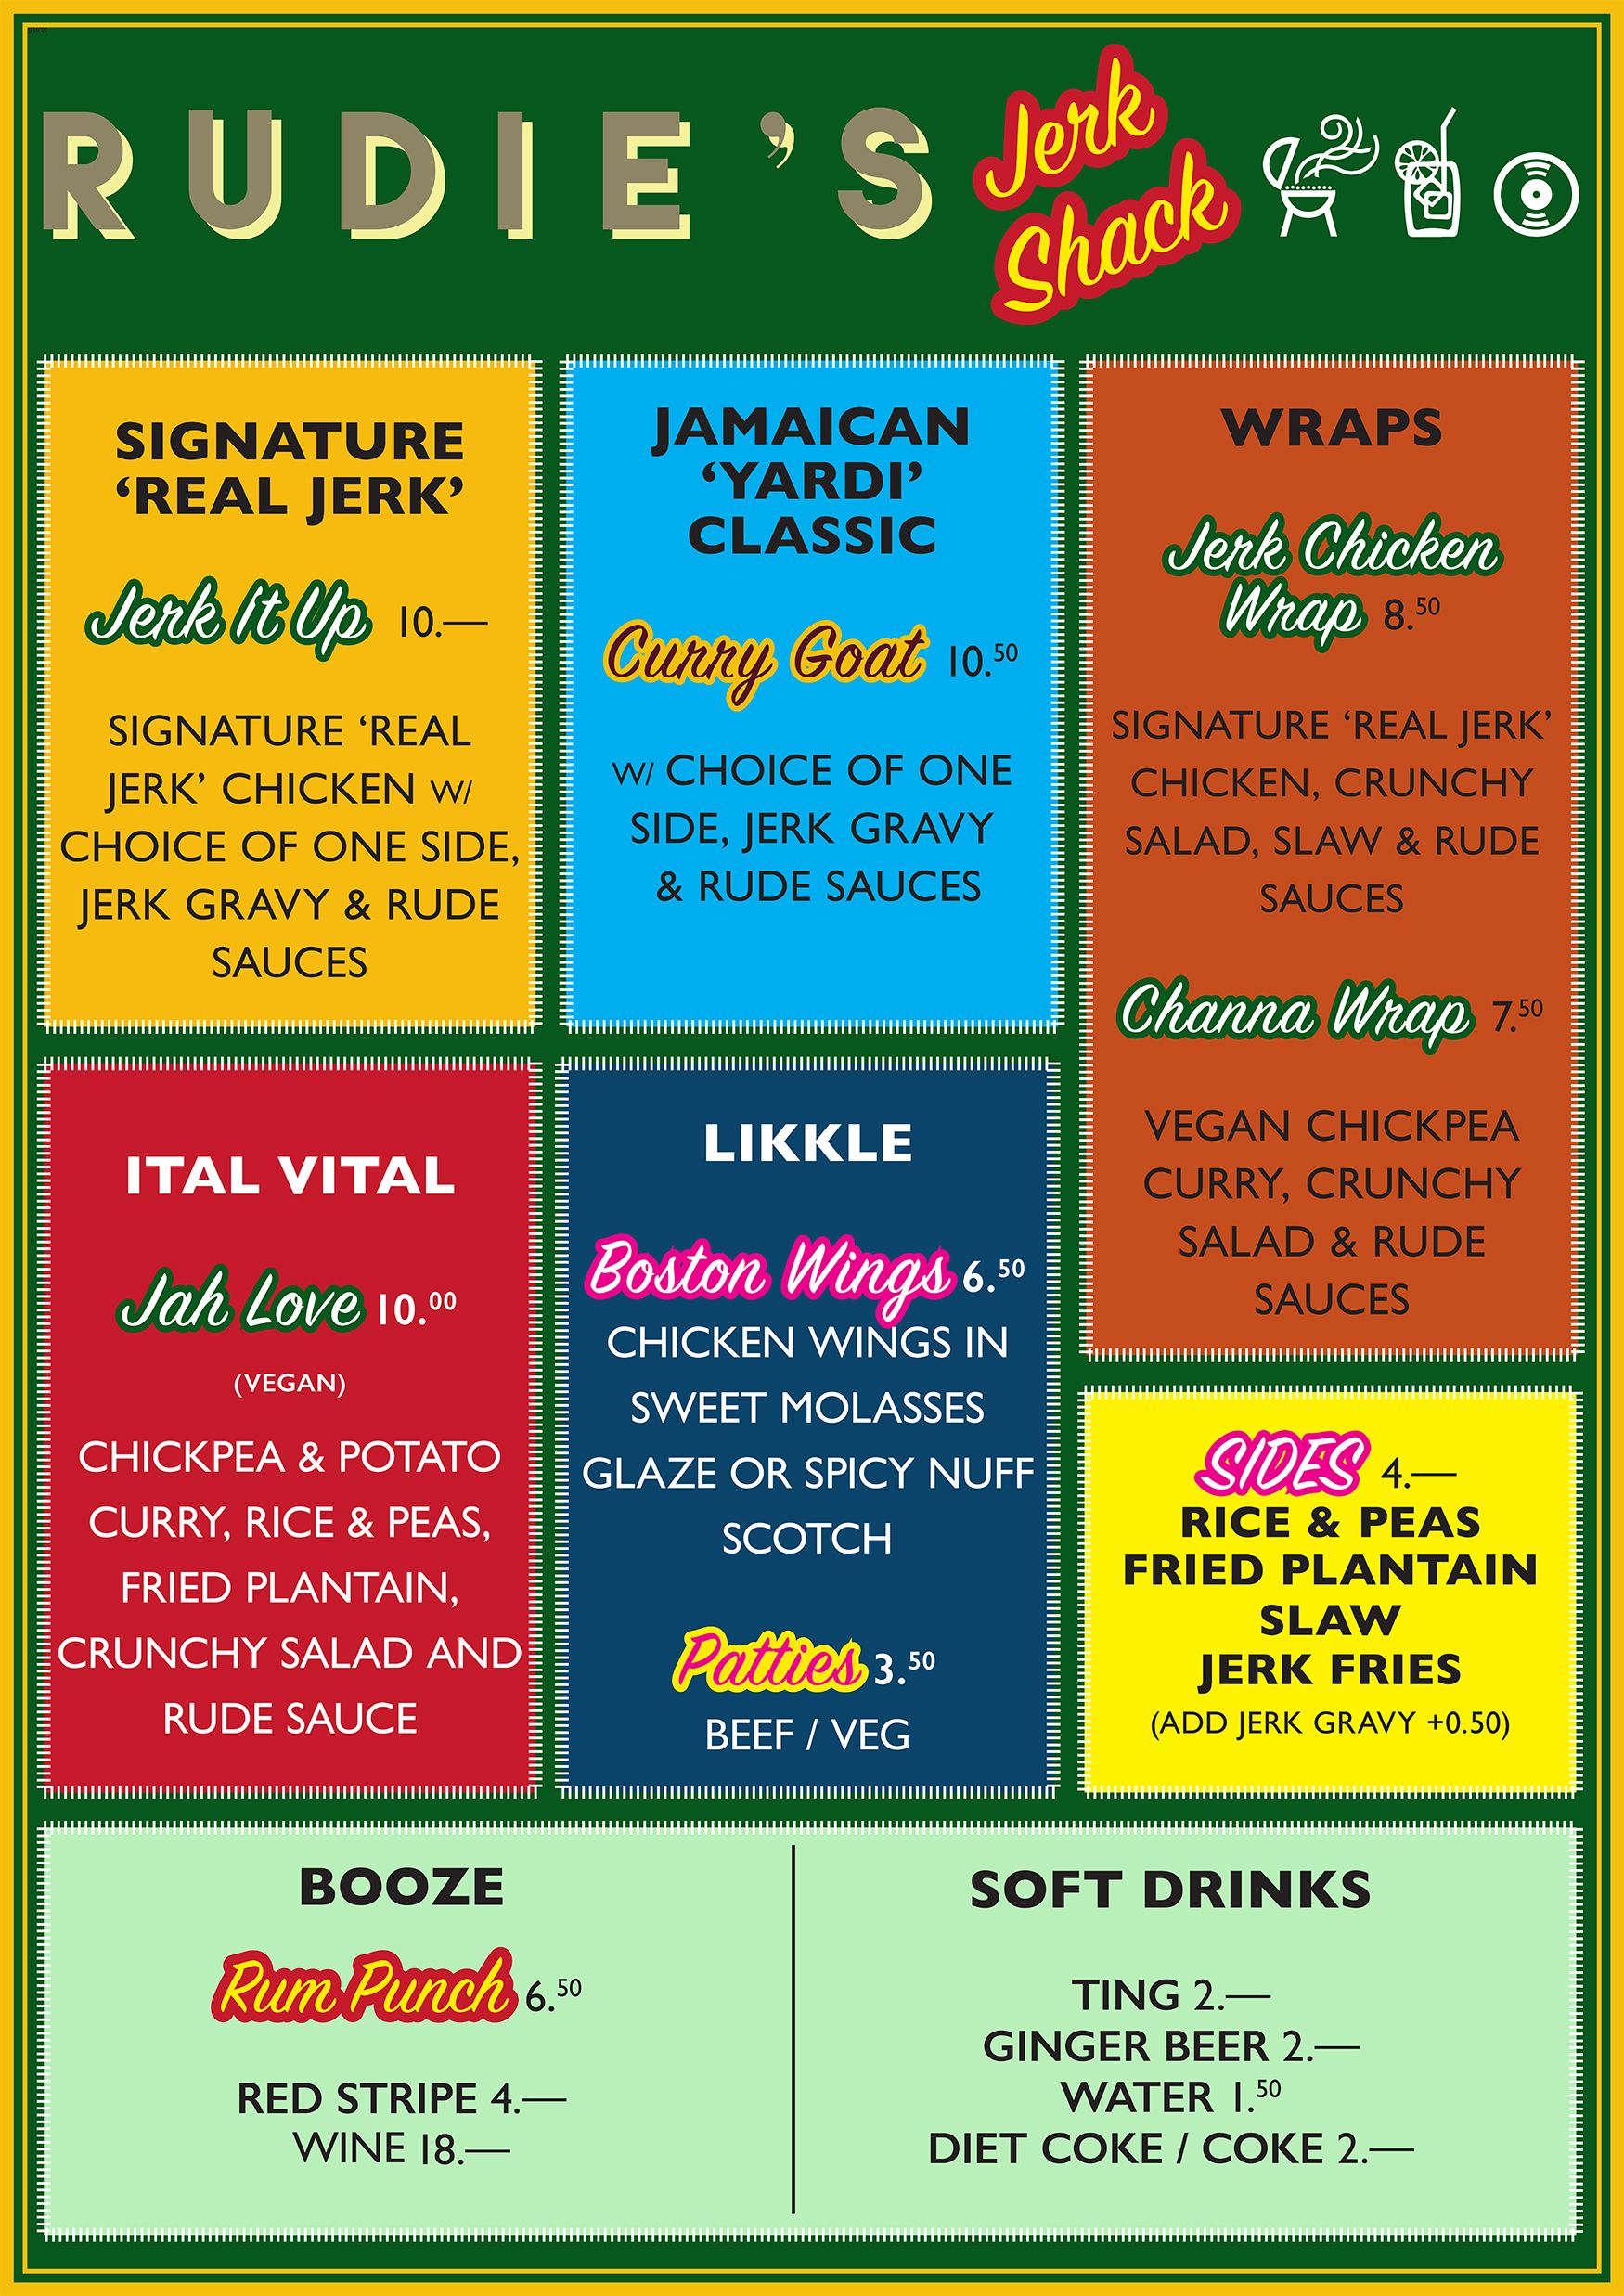 Rudie's Jerk Shack menu